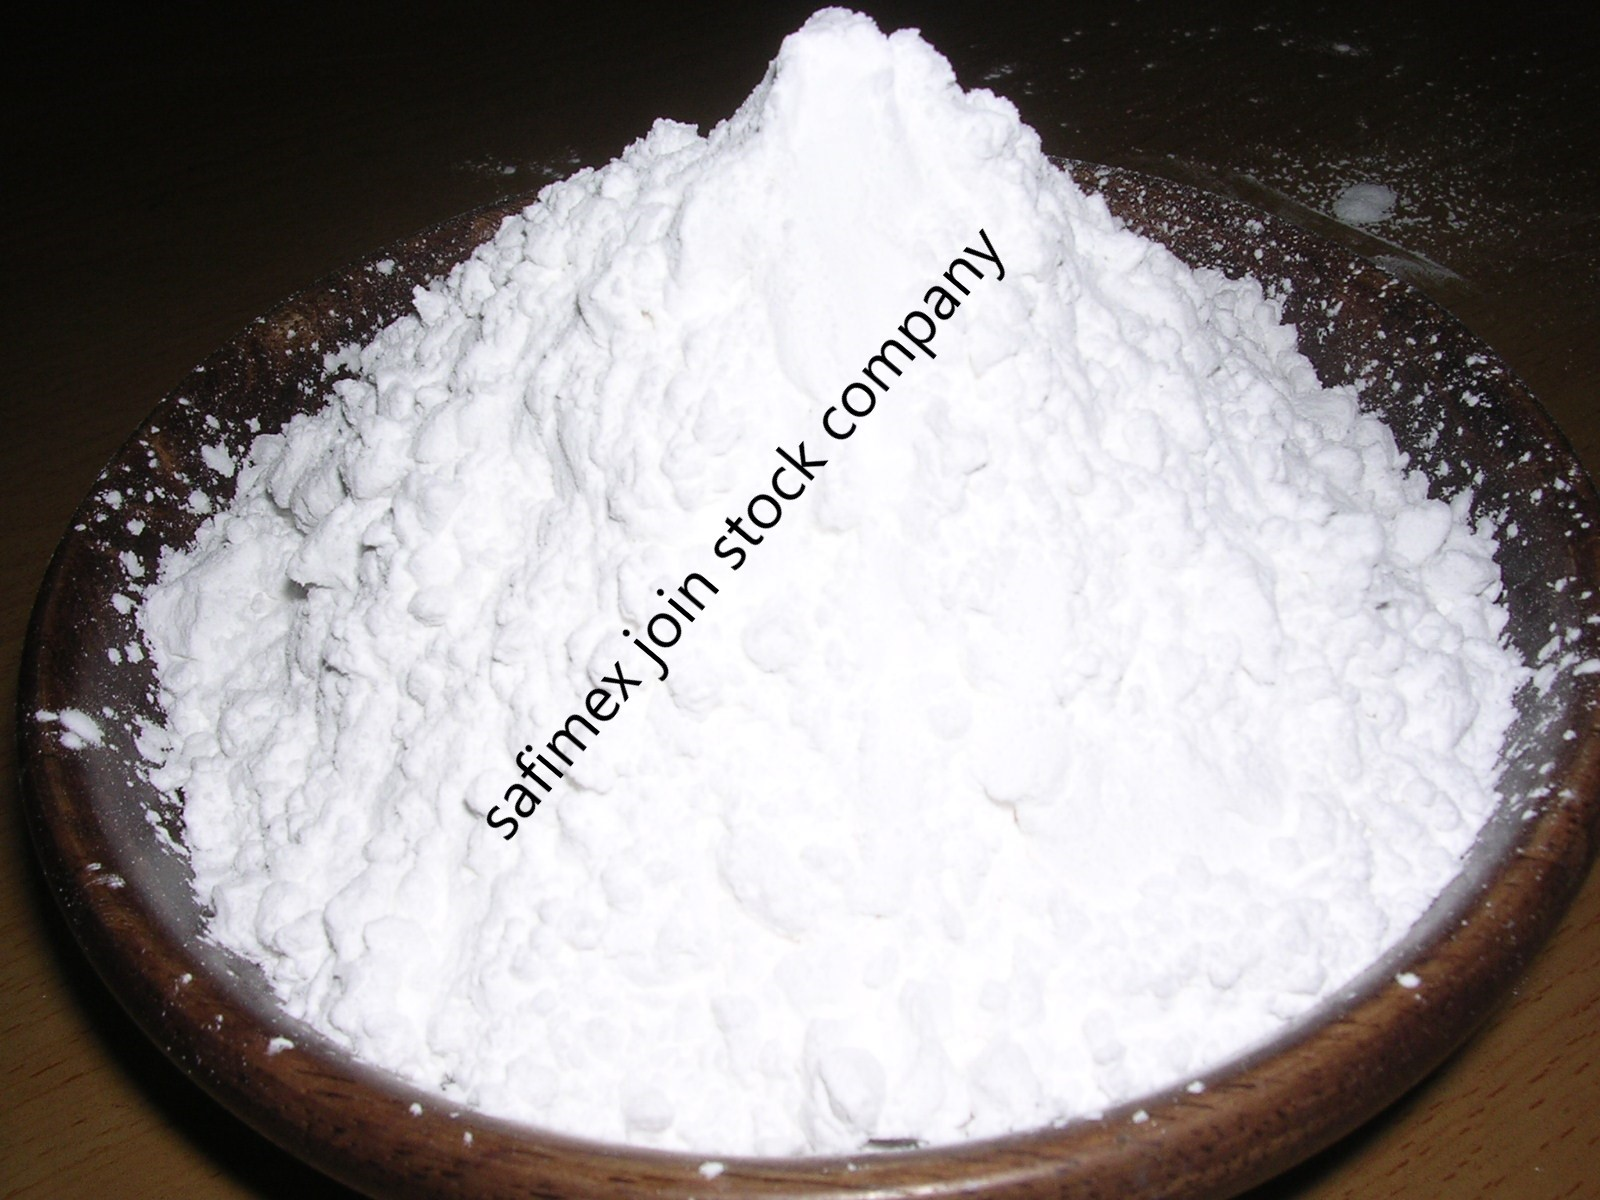 Applications of Tapioca Starch as a Composite Raw Material in Other Industries